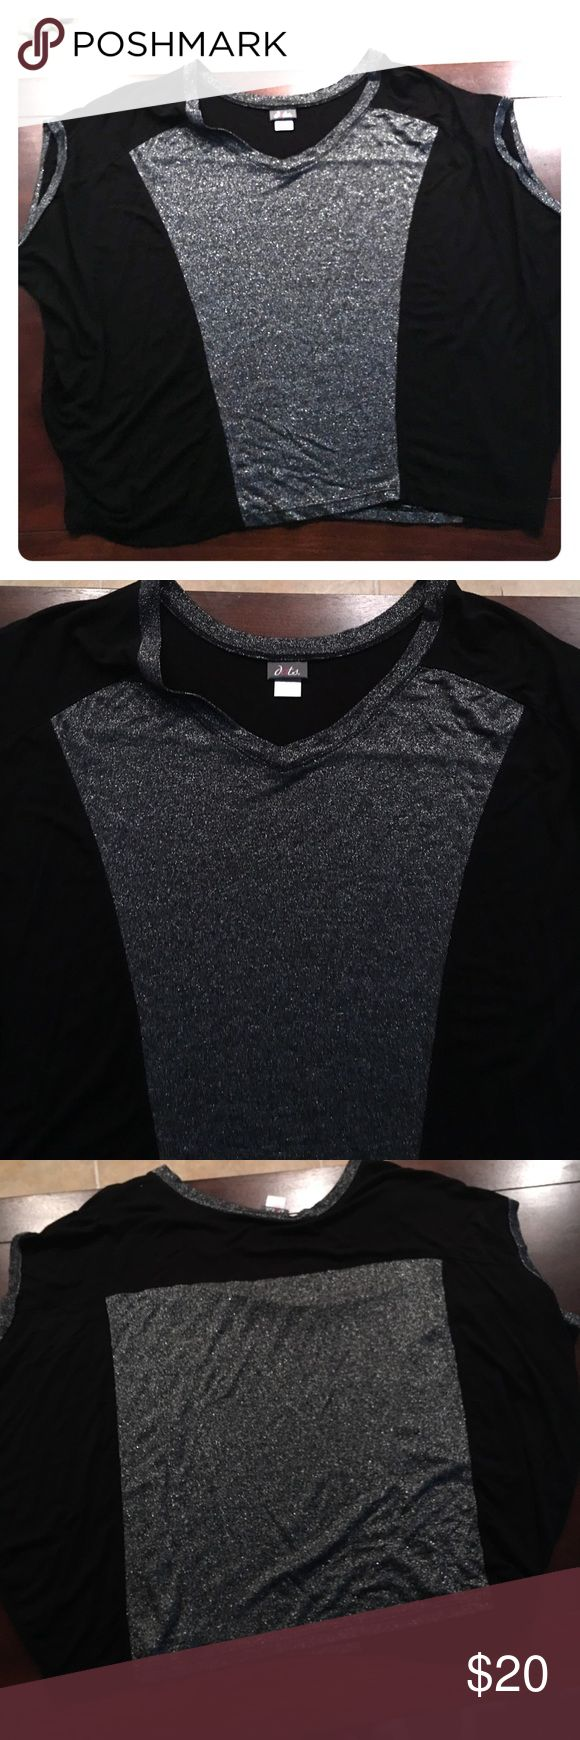 Black and silver Blouse Large black and silver Blouse! Made out of 95% Rayon/5% Spandex. Comes from a smoke free home Dots Tops Blouses